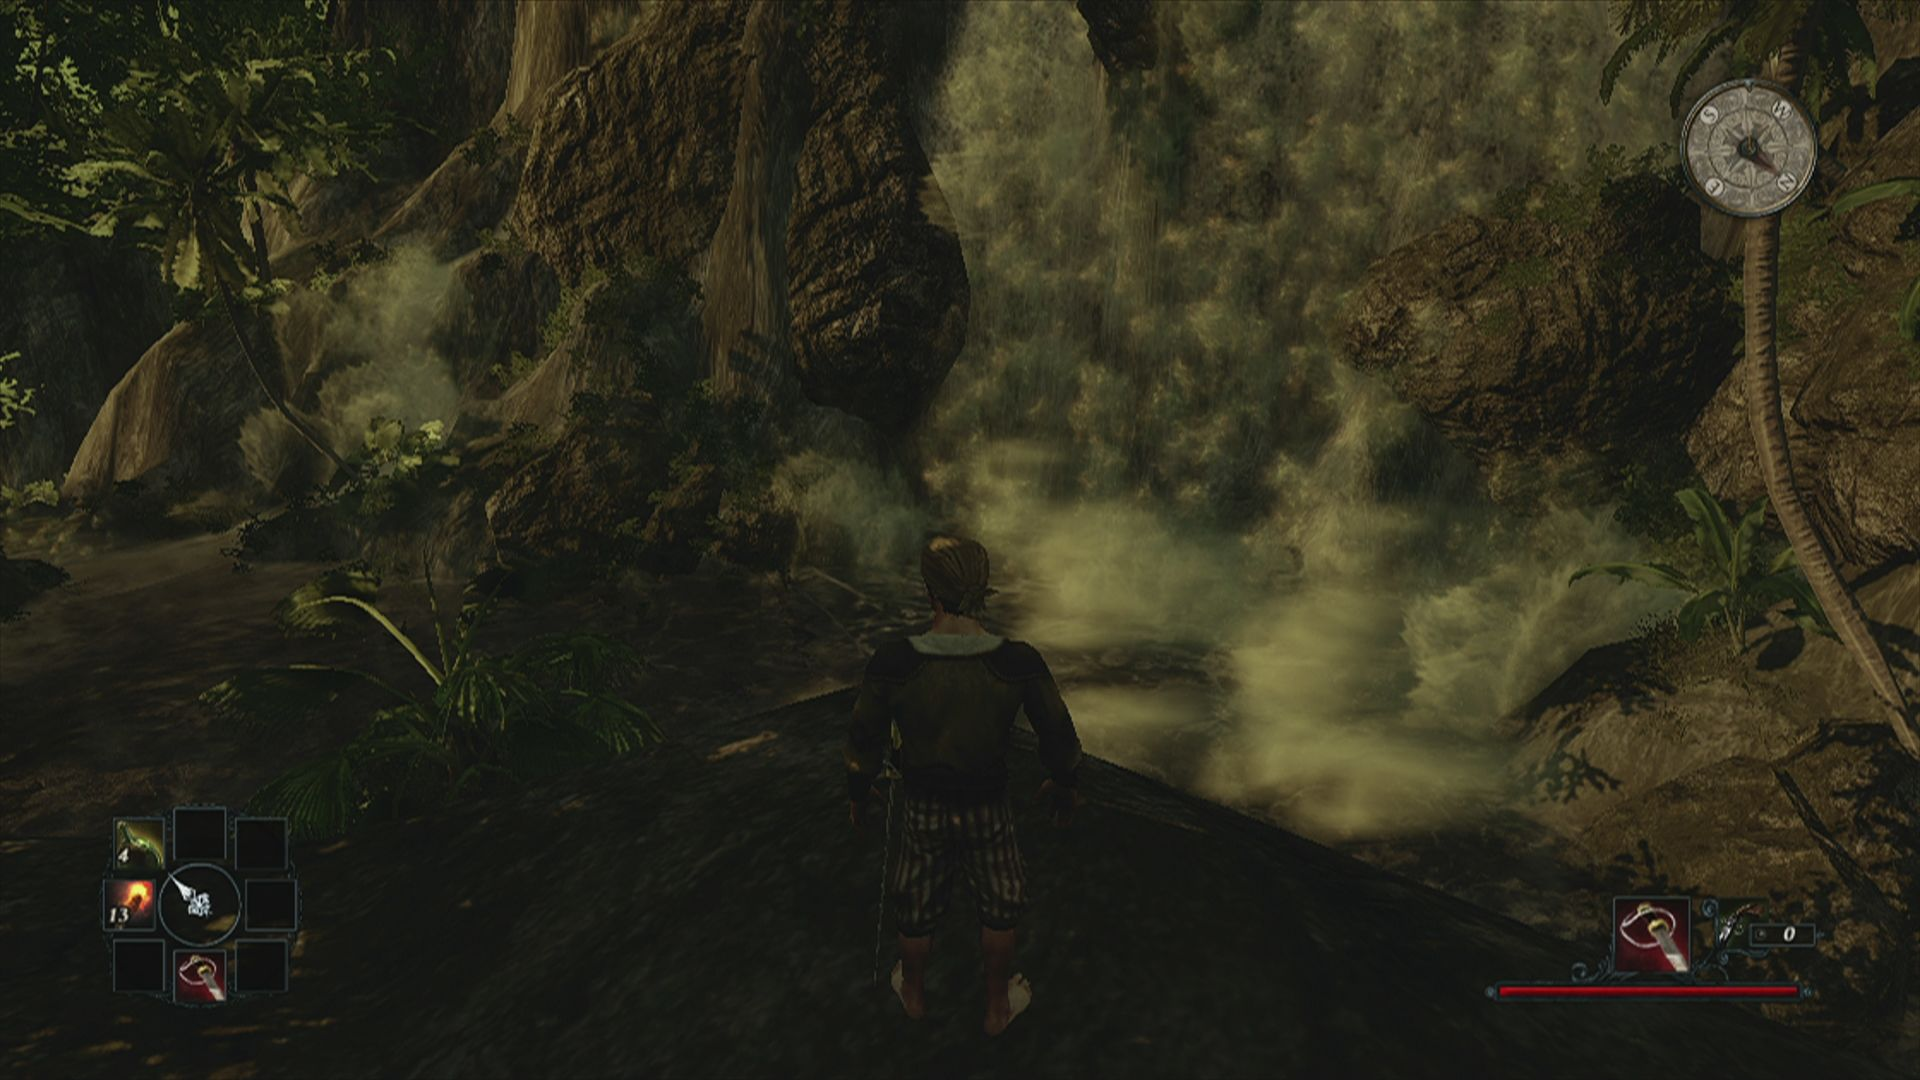 Risen 2: Dark Waters Xbox 360 The game has waterfalls as well